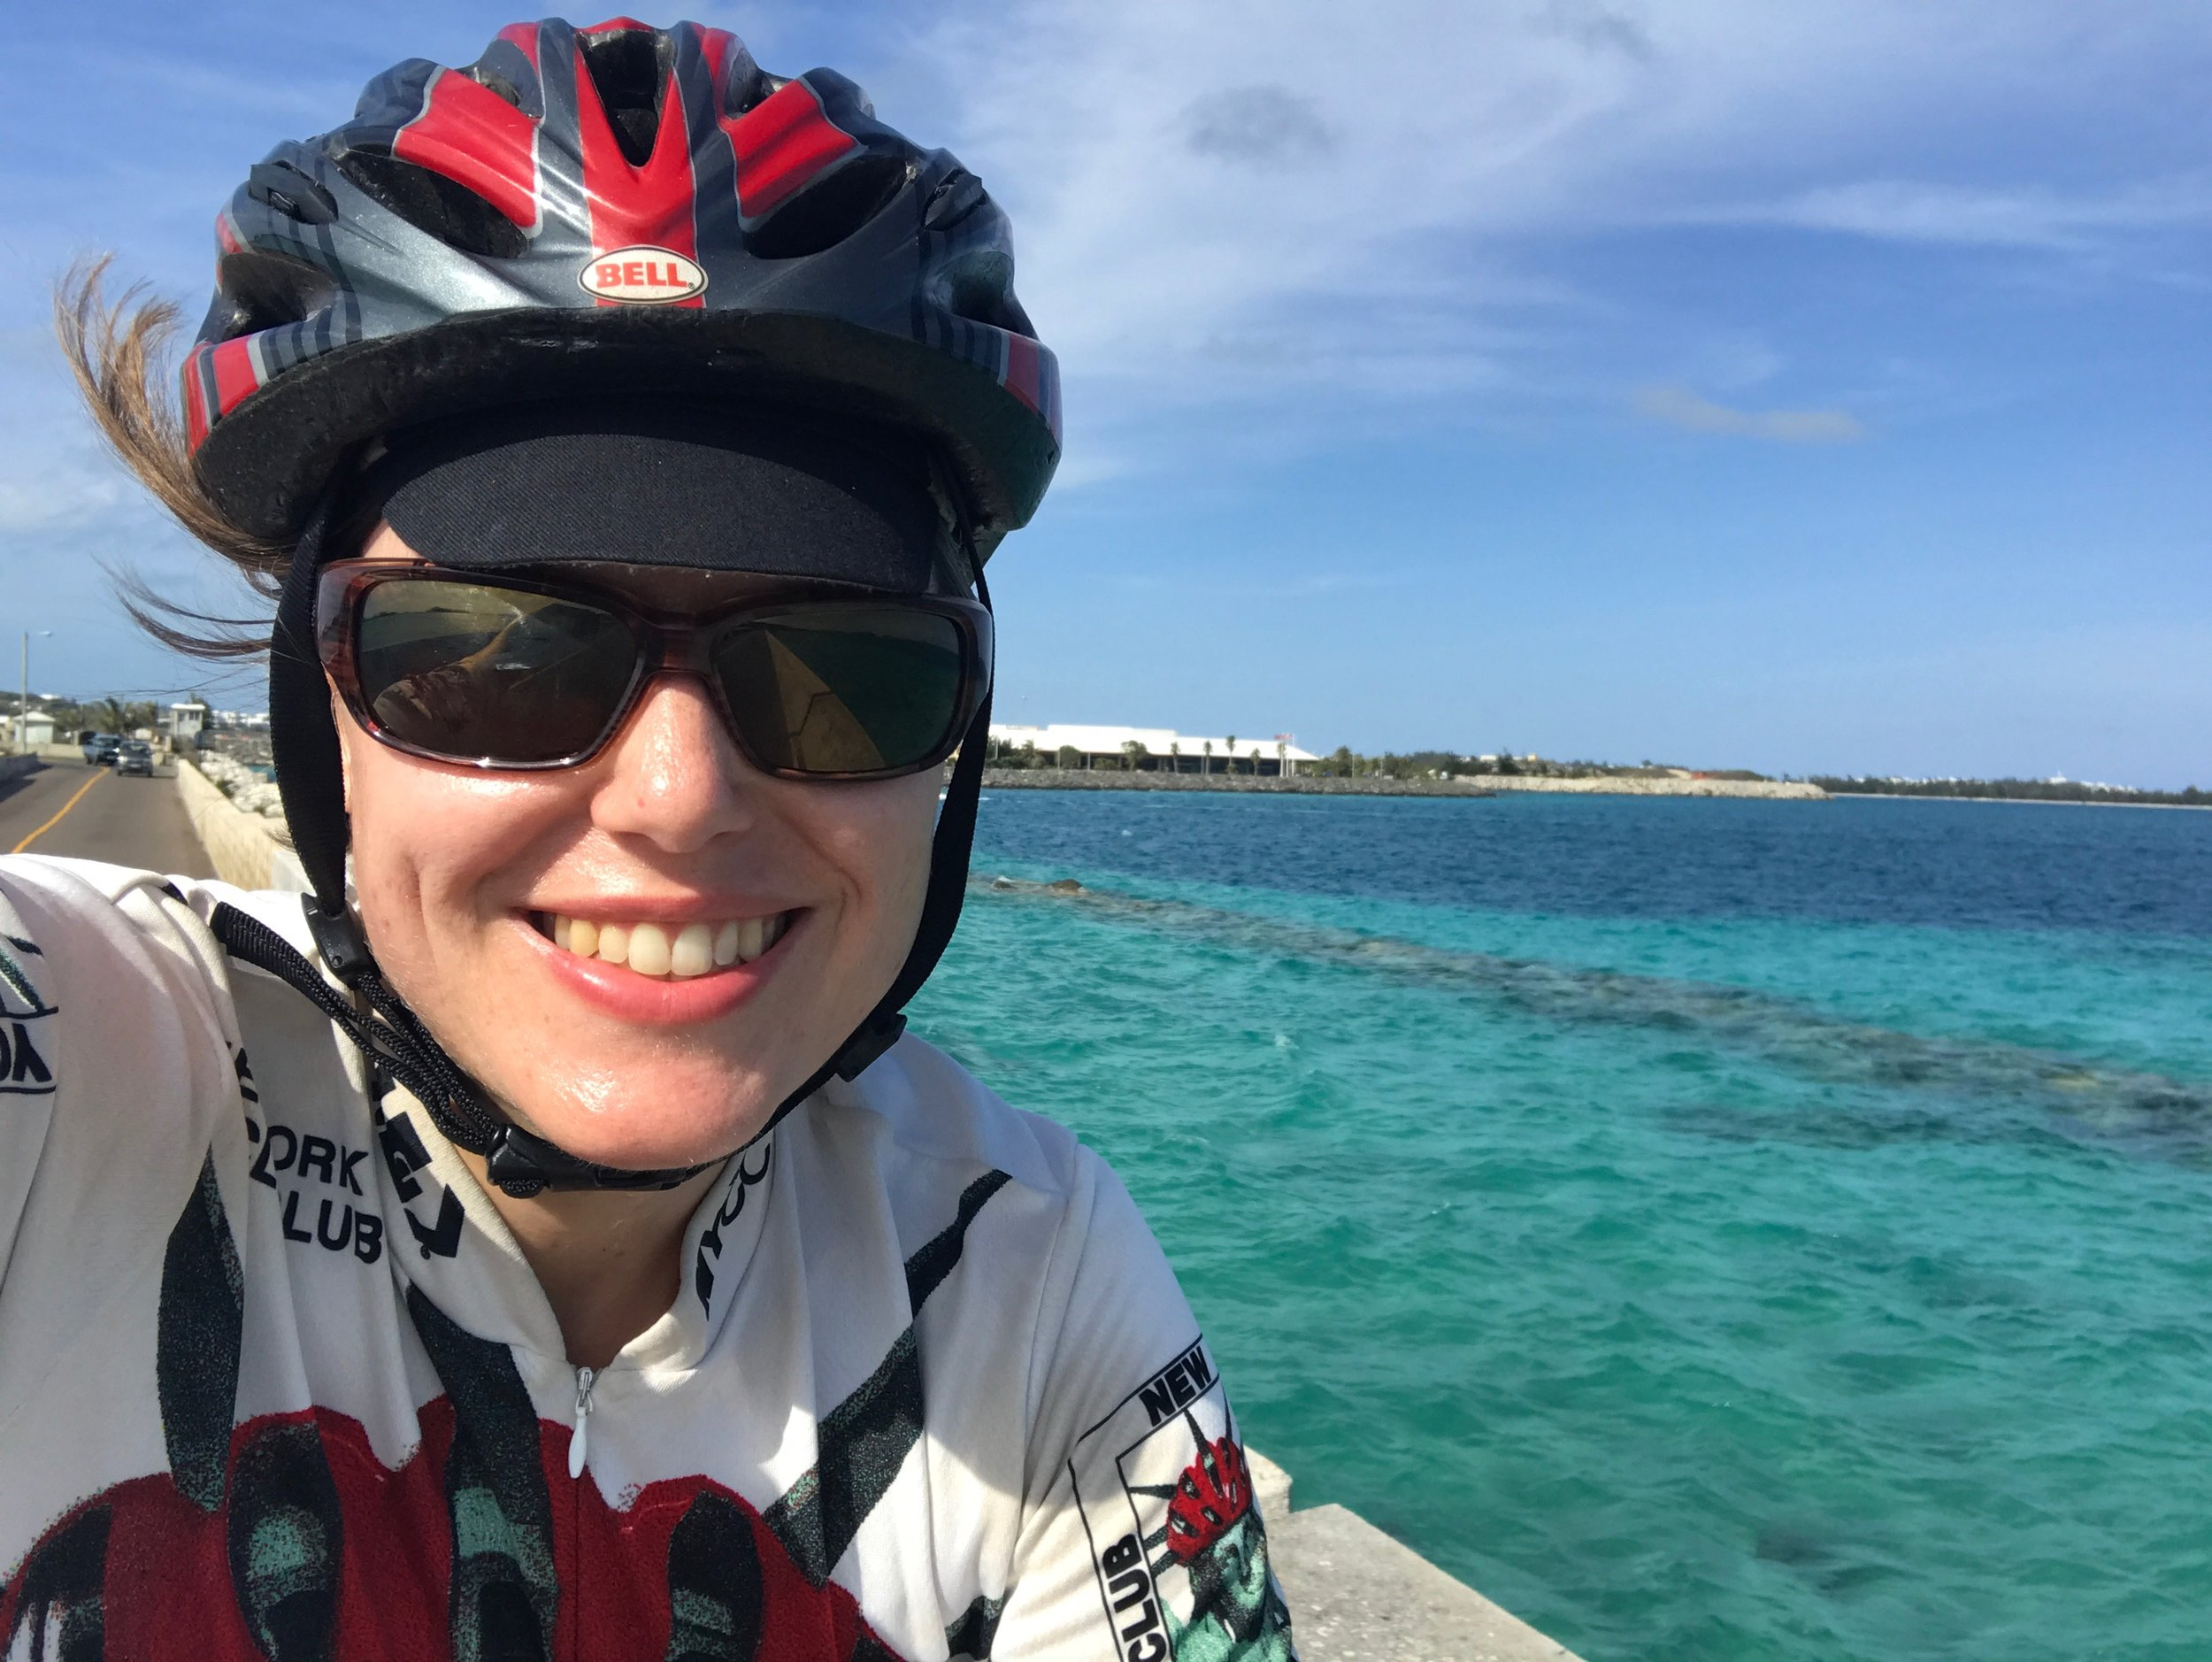 Biking in Bermuda on the trip where I should have bought travel insurance!